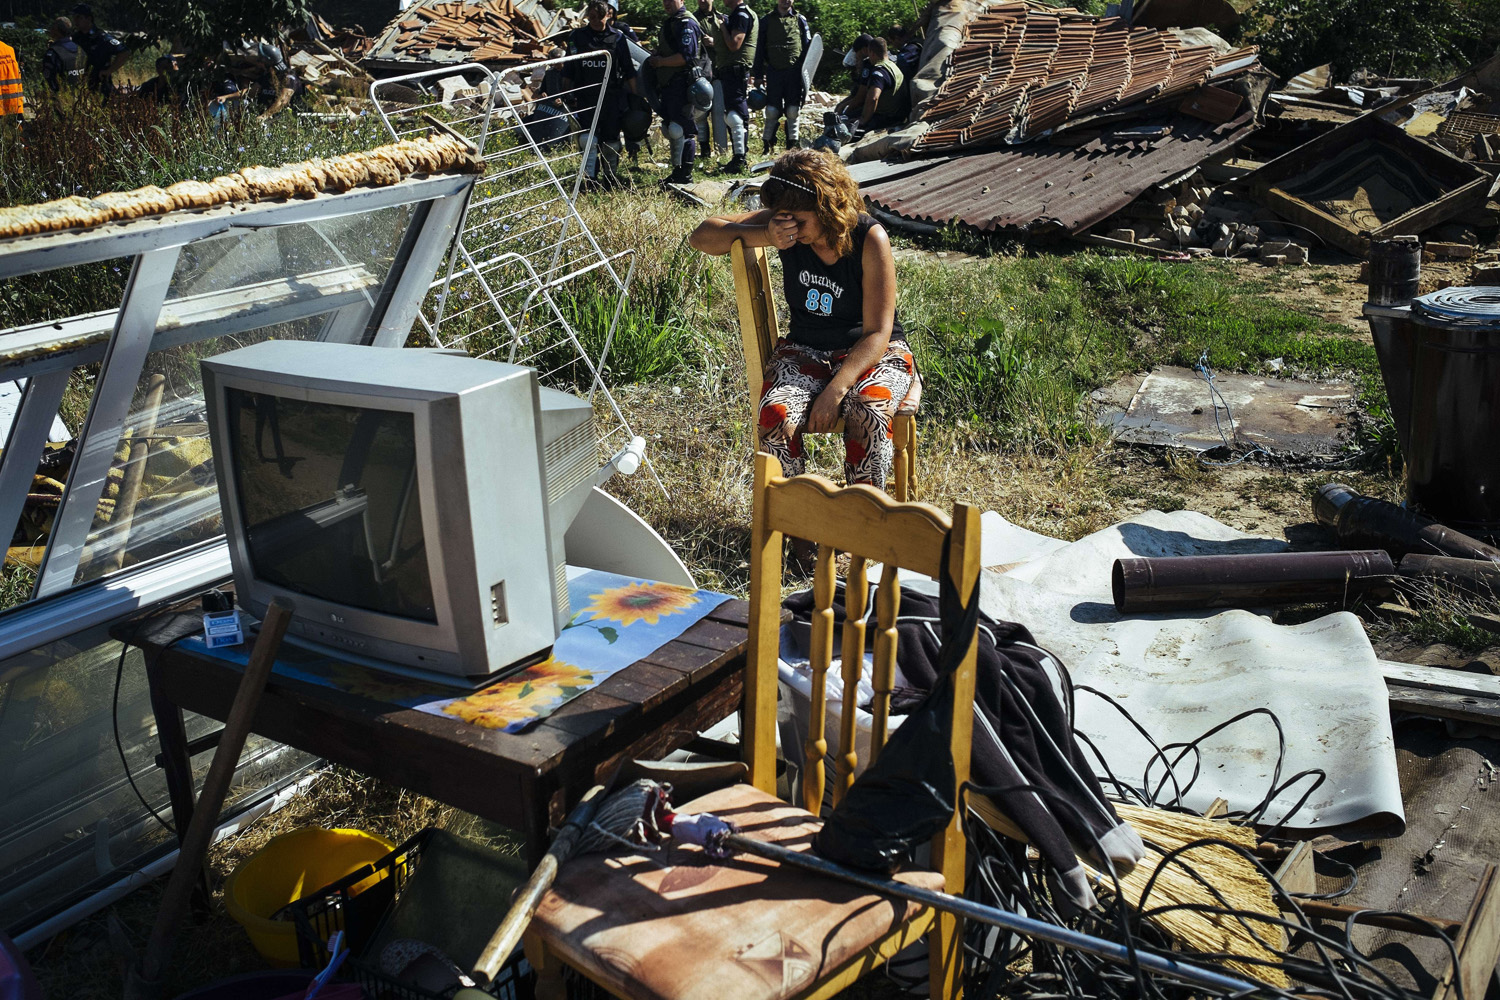 Jul. 21, 2014. A Roma woman reacts after a bulldozer demolished her house in a Roma suburb in the town of Stara Zagora.